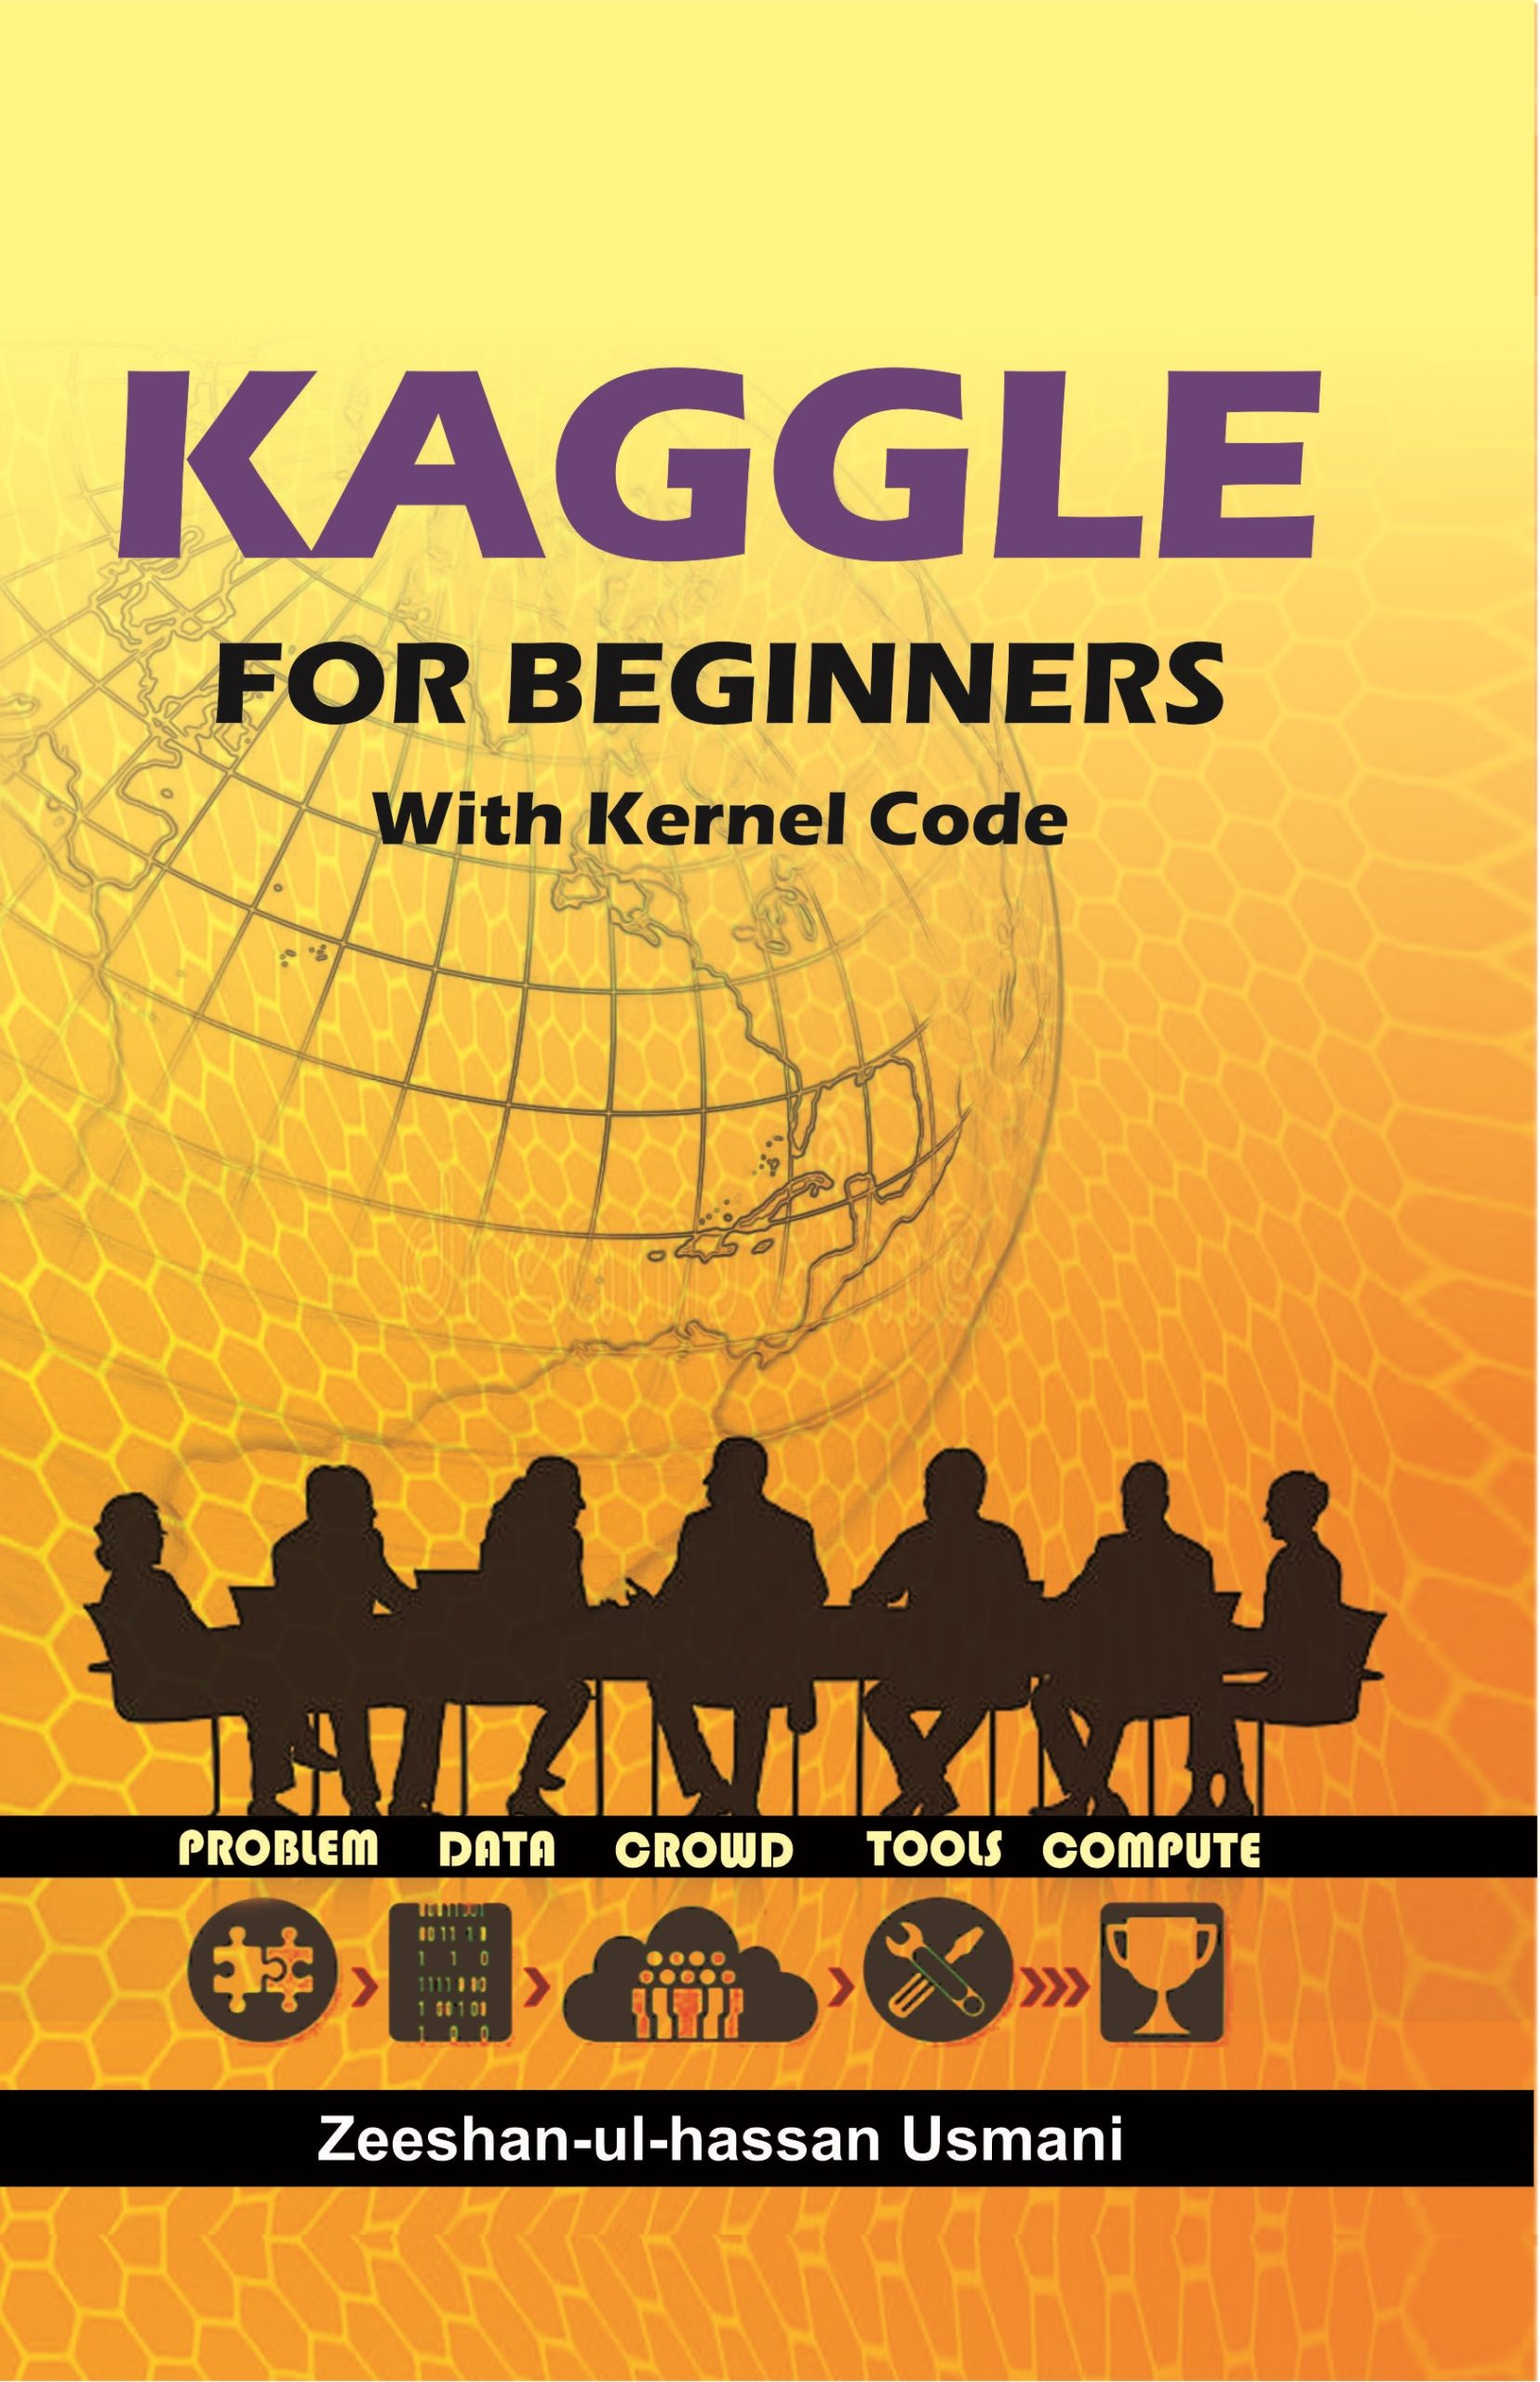 Kaggle for Beginners